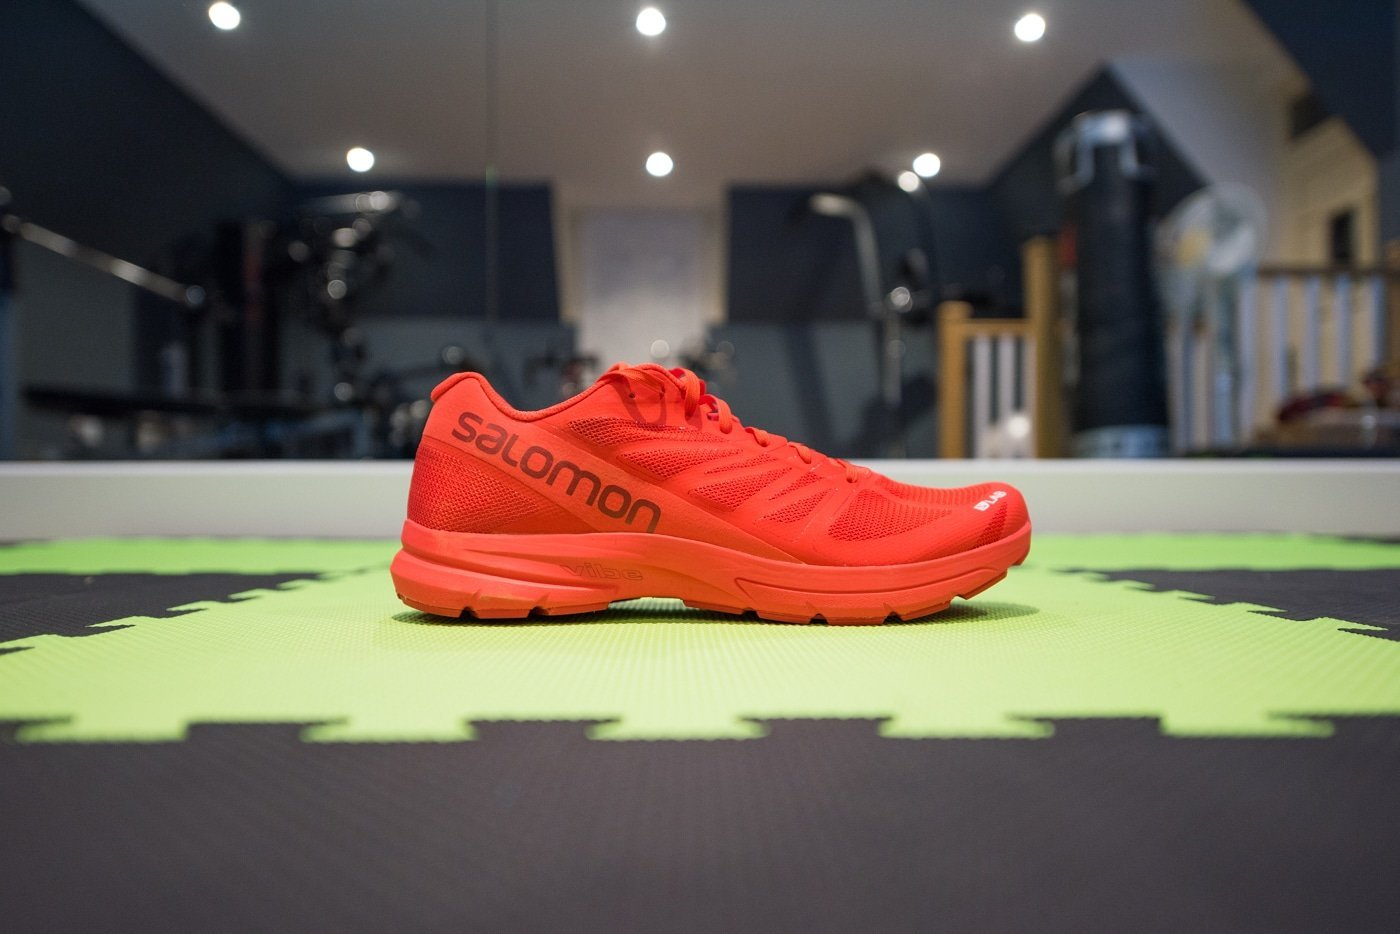 Salomon S-Lab Sonic 2 in all its unboxed glory